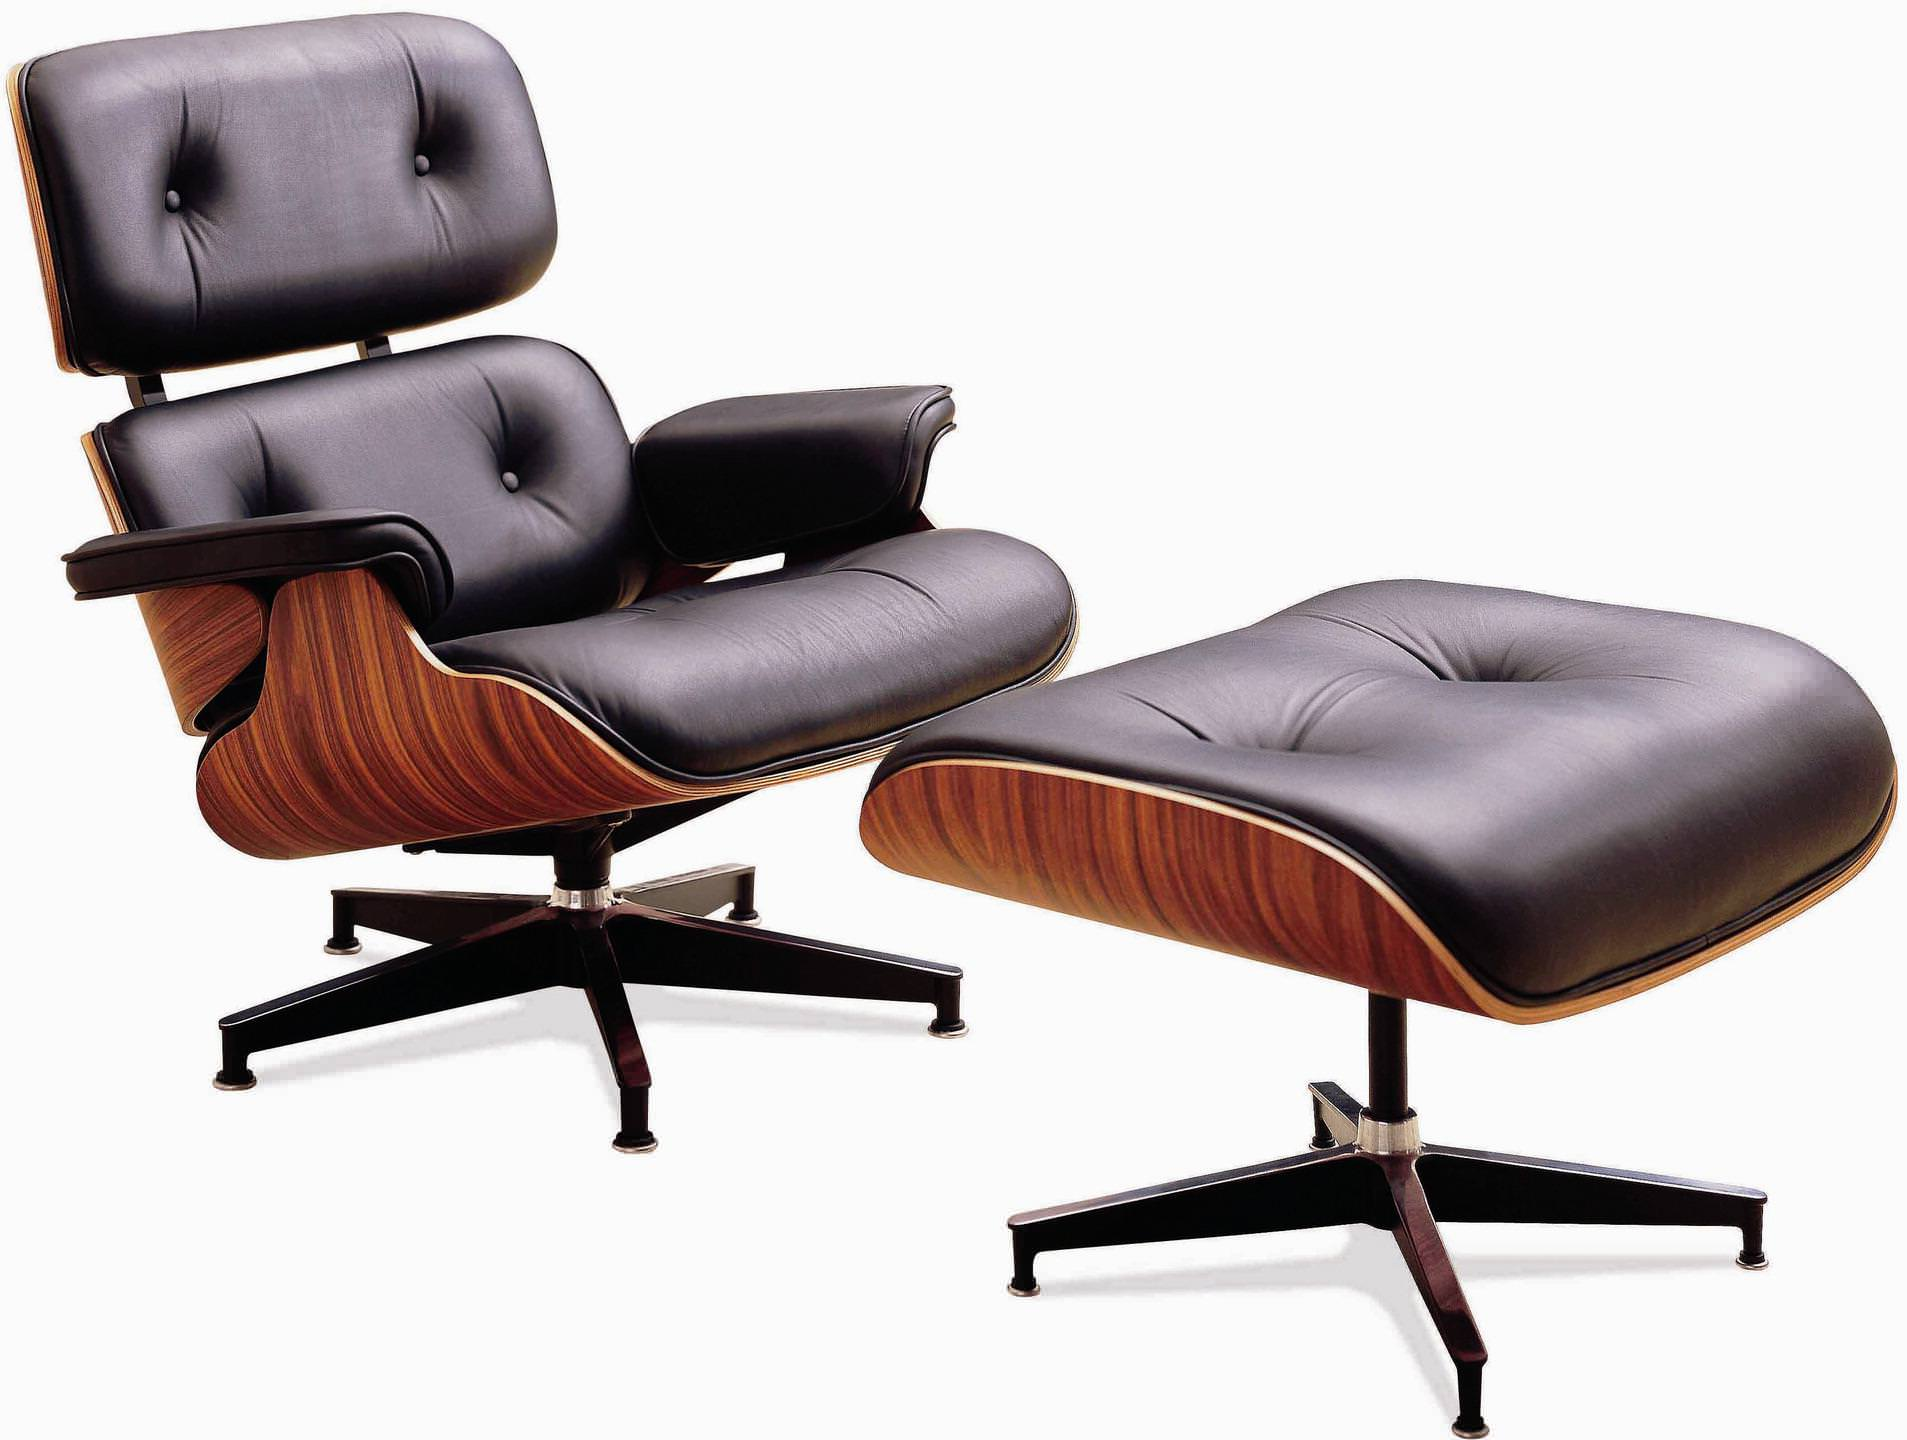 Image of: Eames Lounge Chair Ottoman